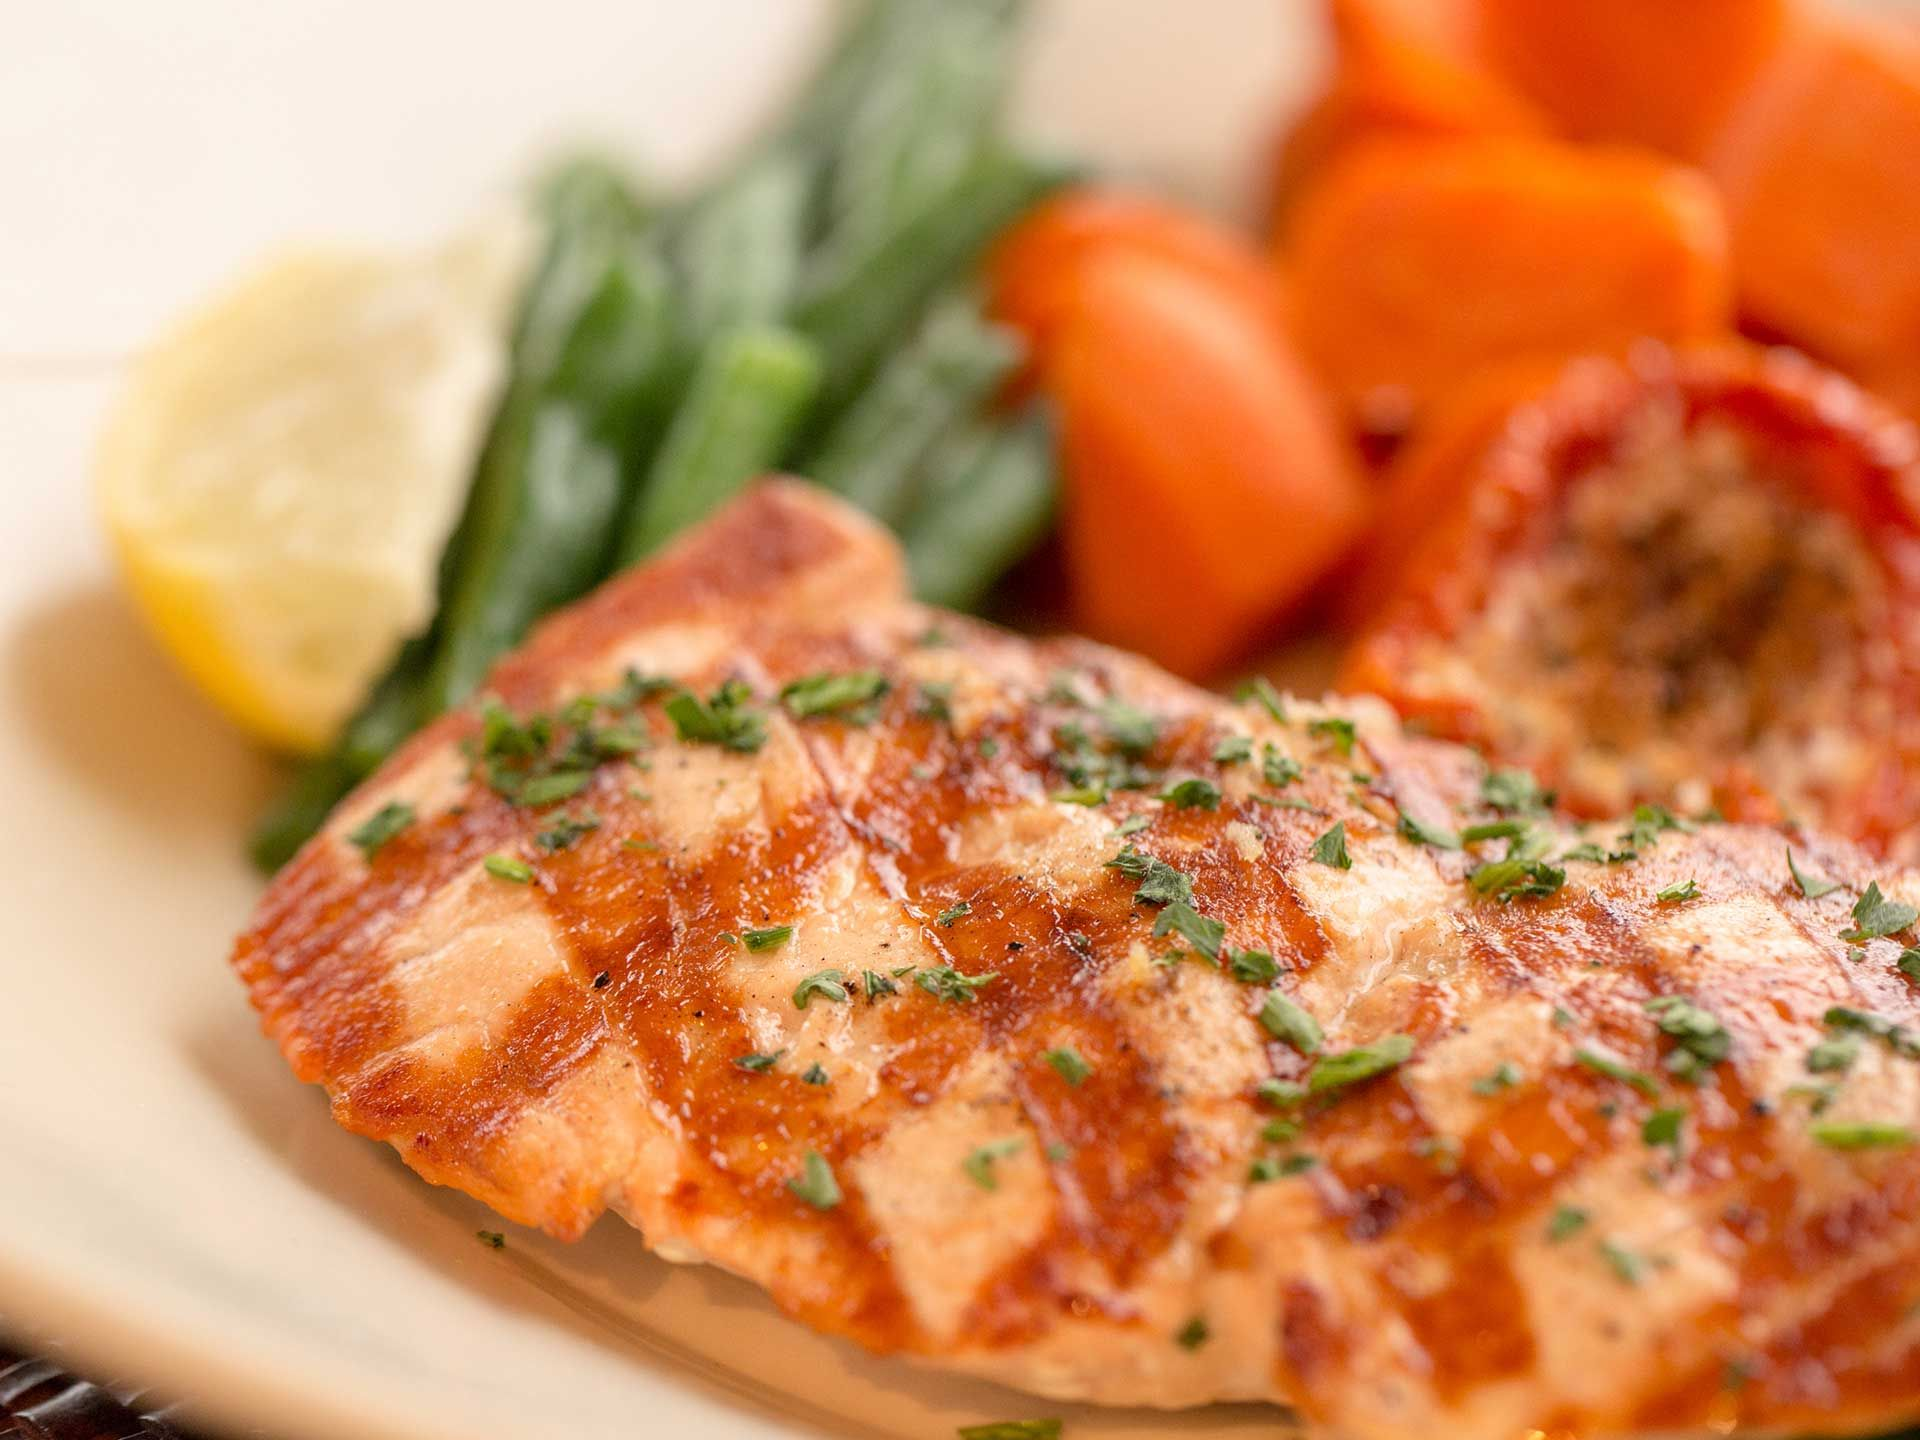 Cheesecake-factory-skinnylicious-grilled-salmon